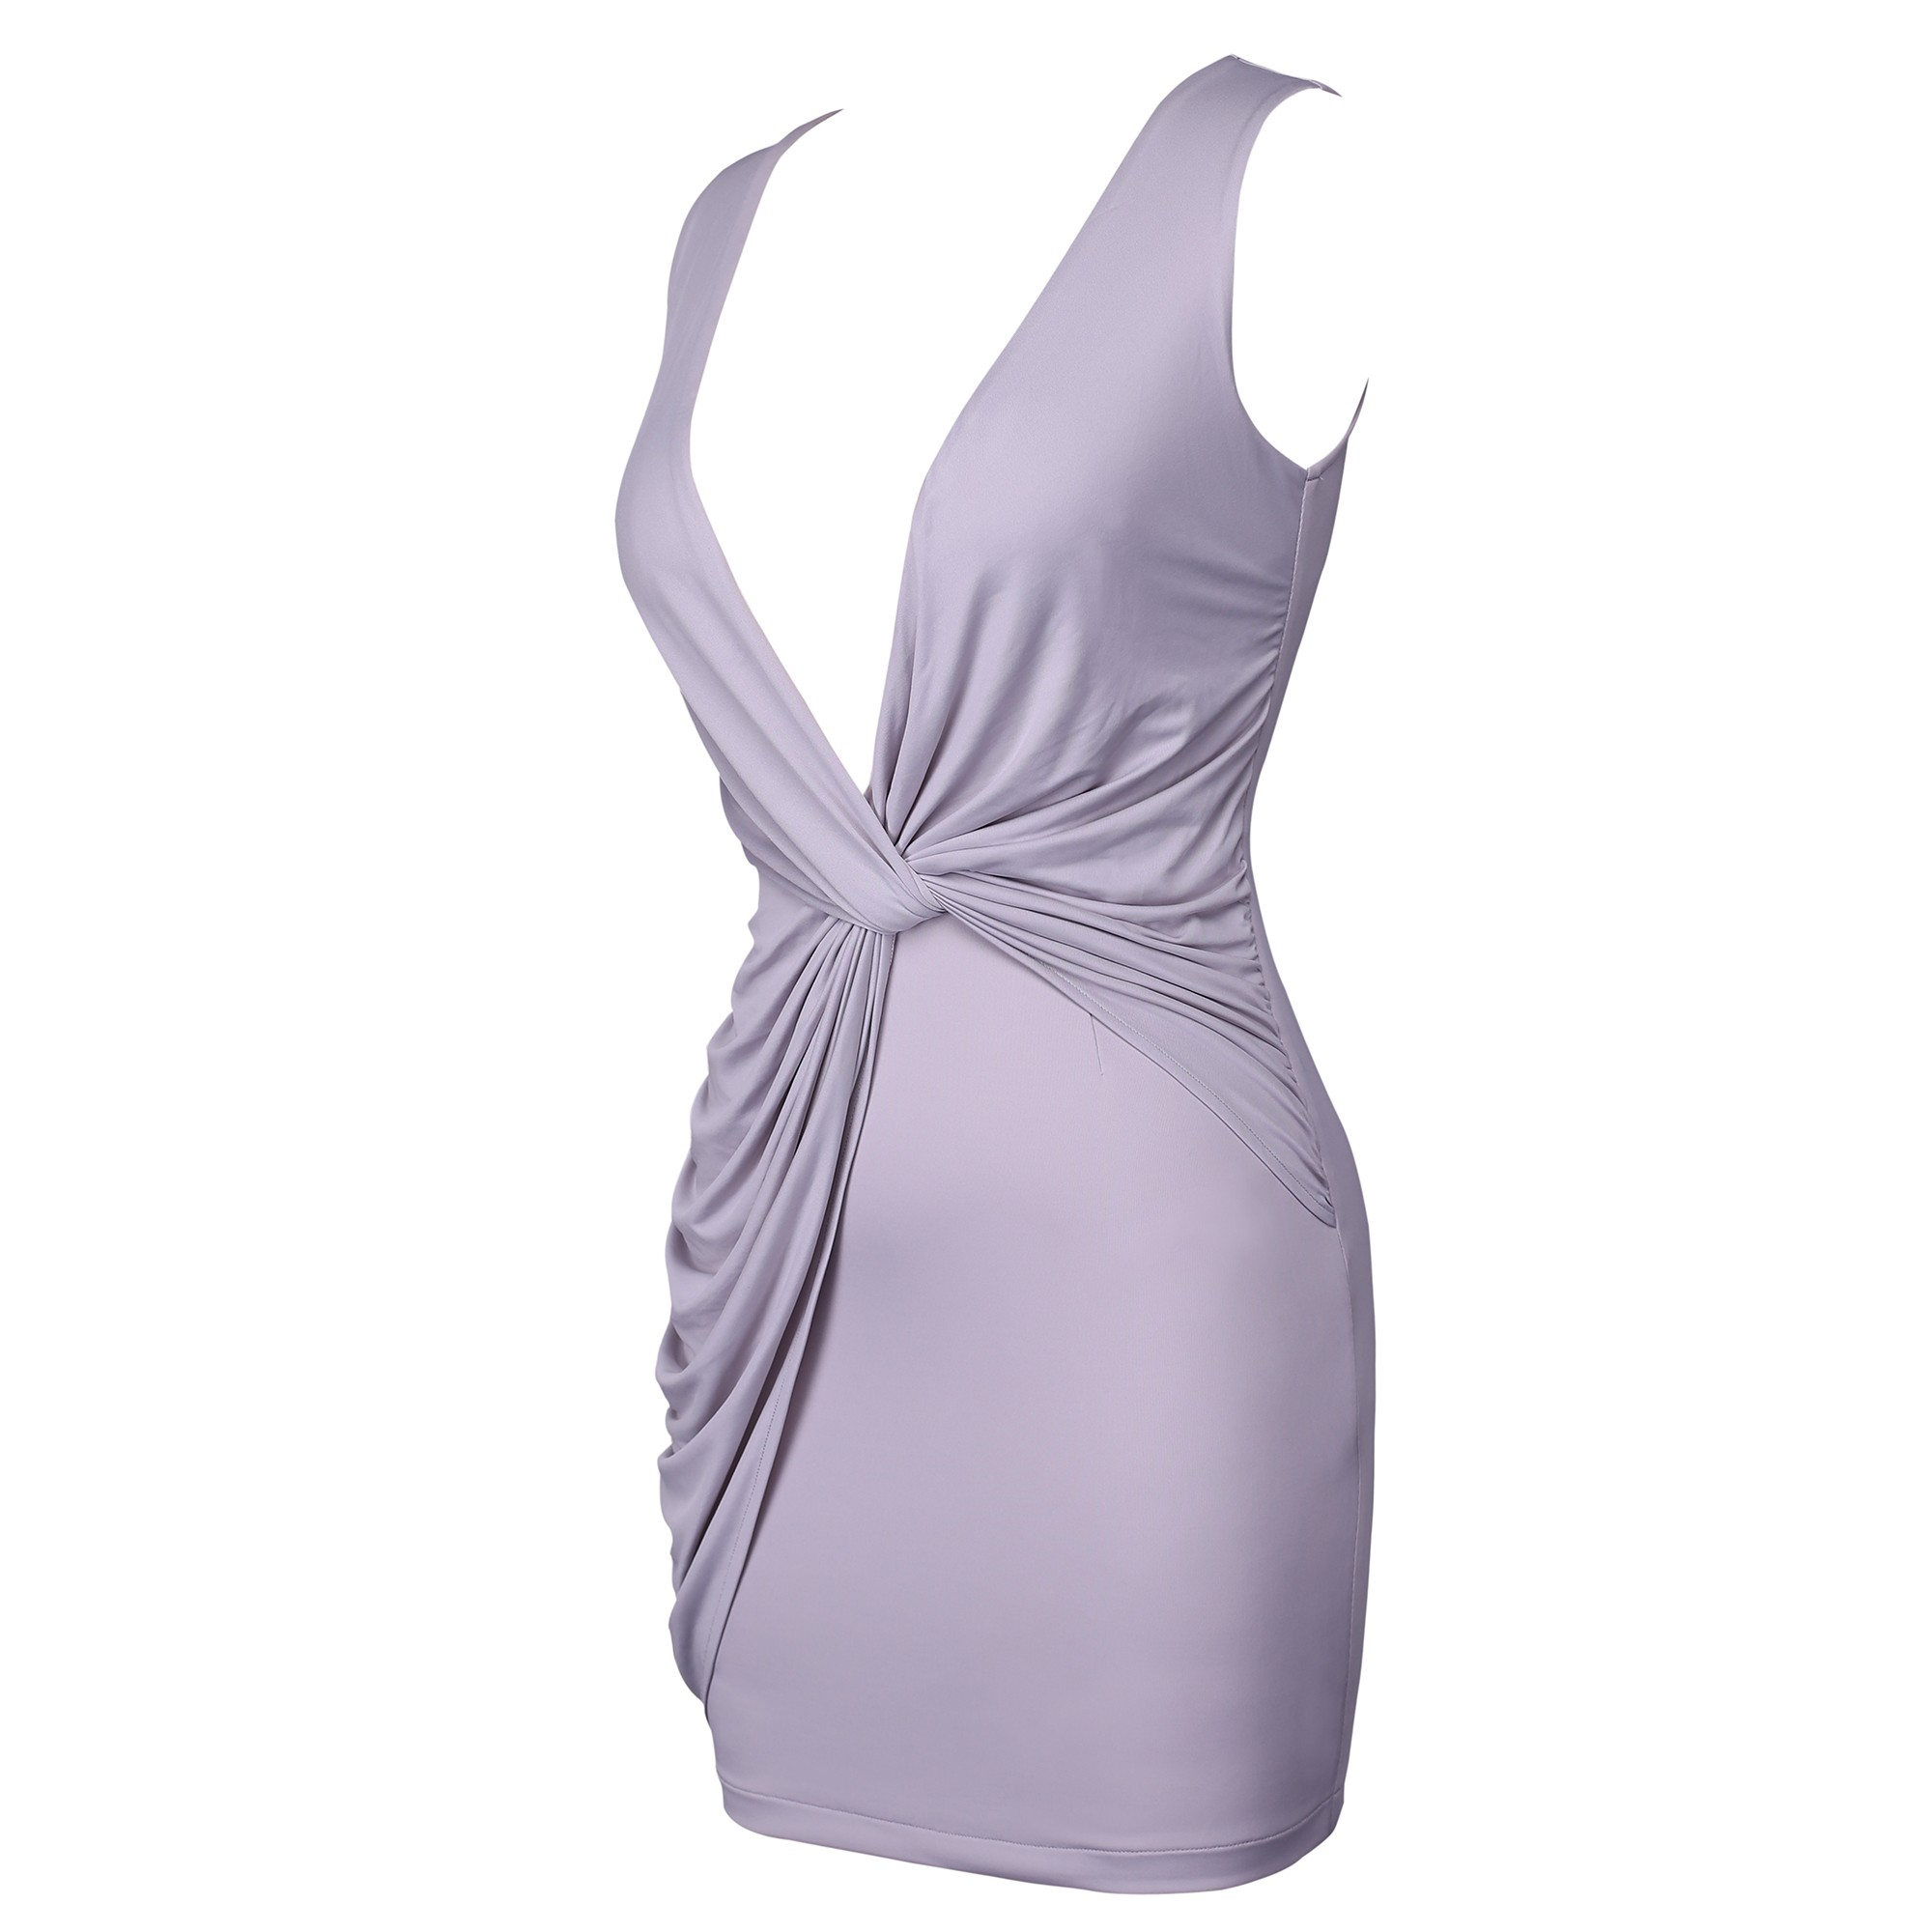 Gray V Neck Sleeveless Mini Stagger Knot Party Bodycon Dress HD510-Gray